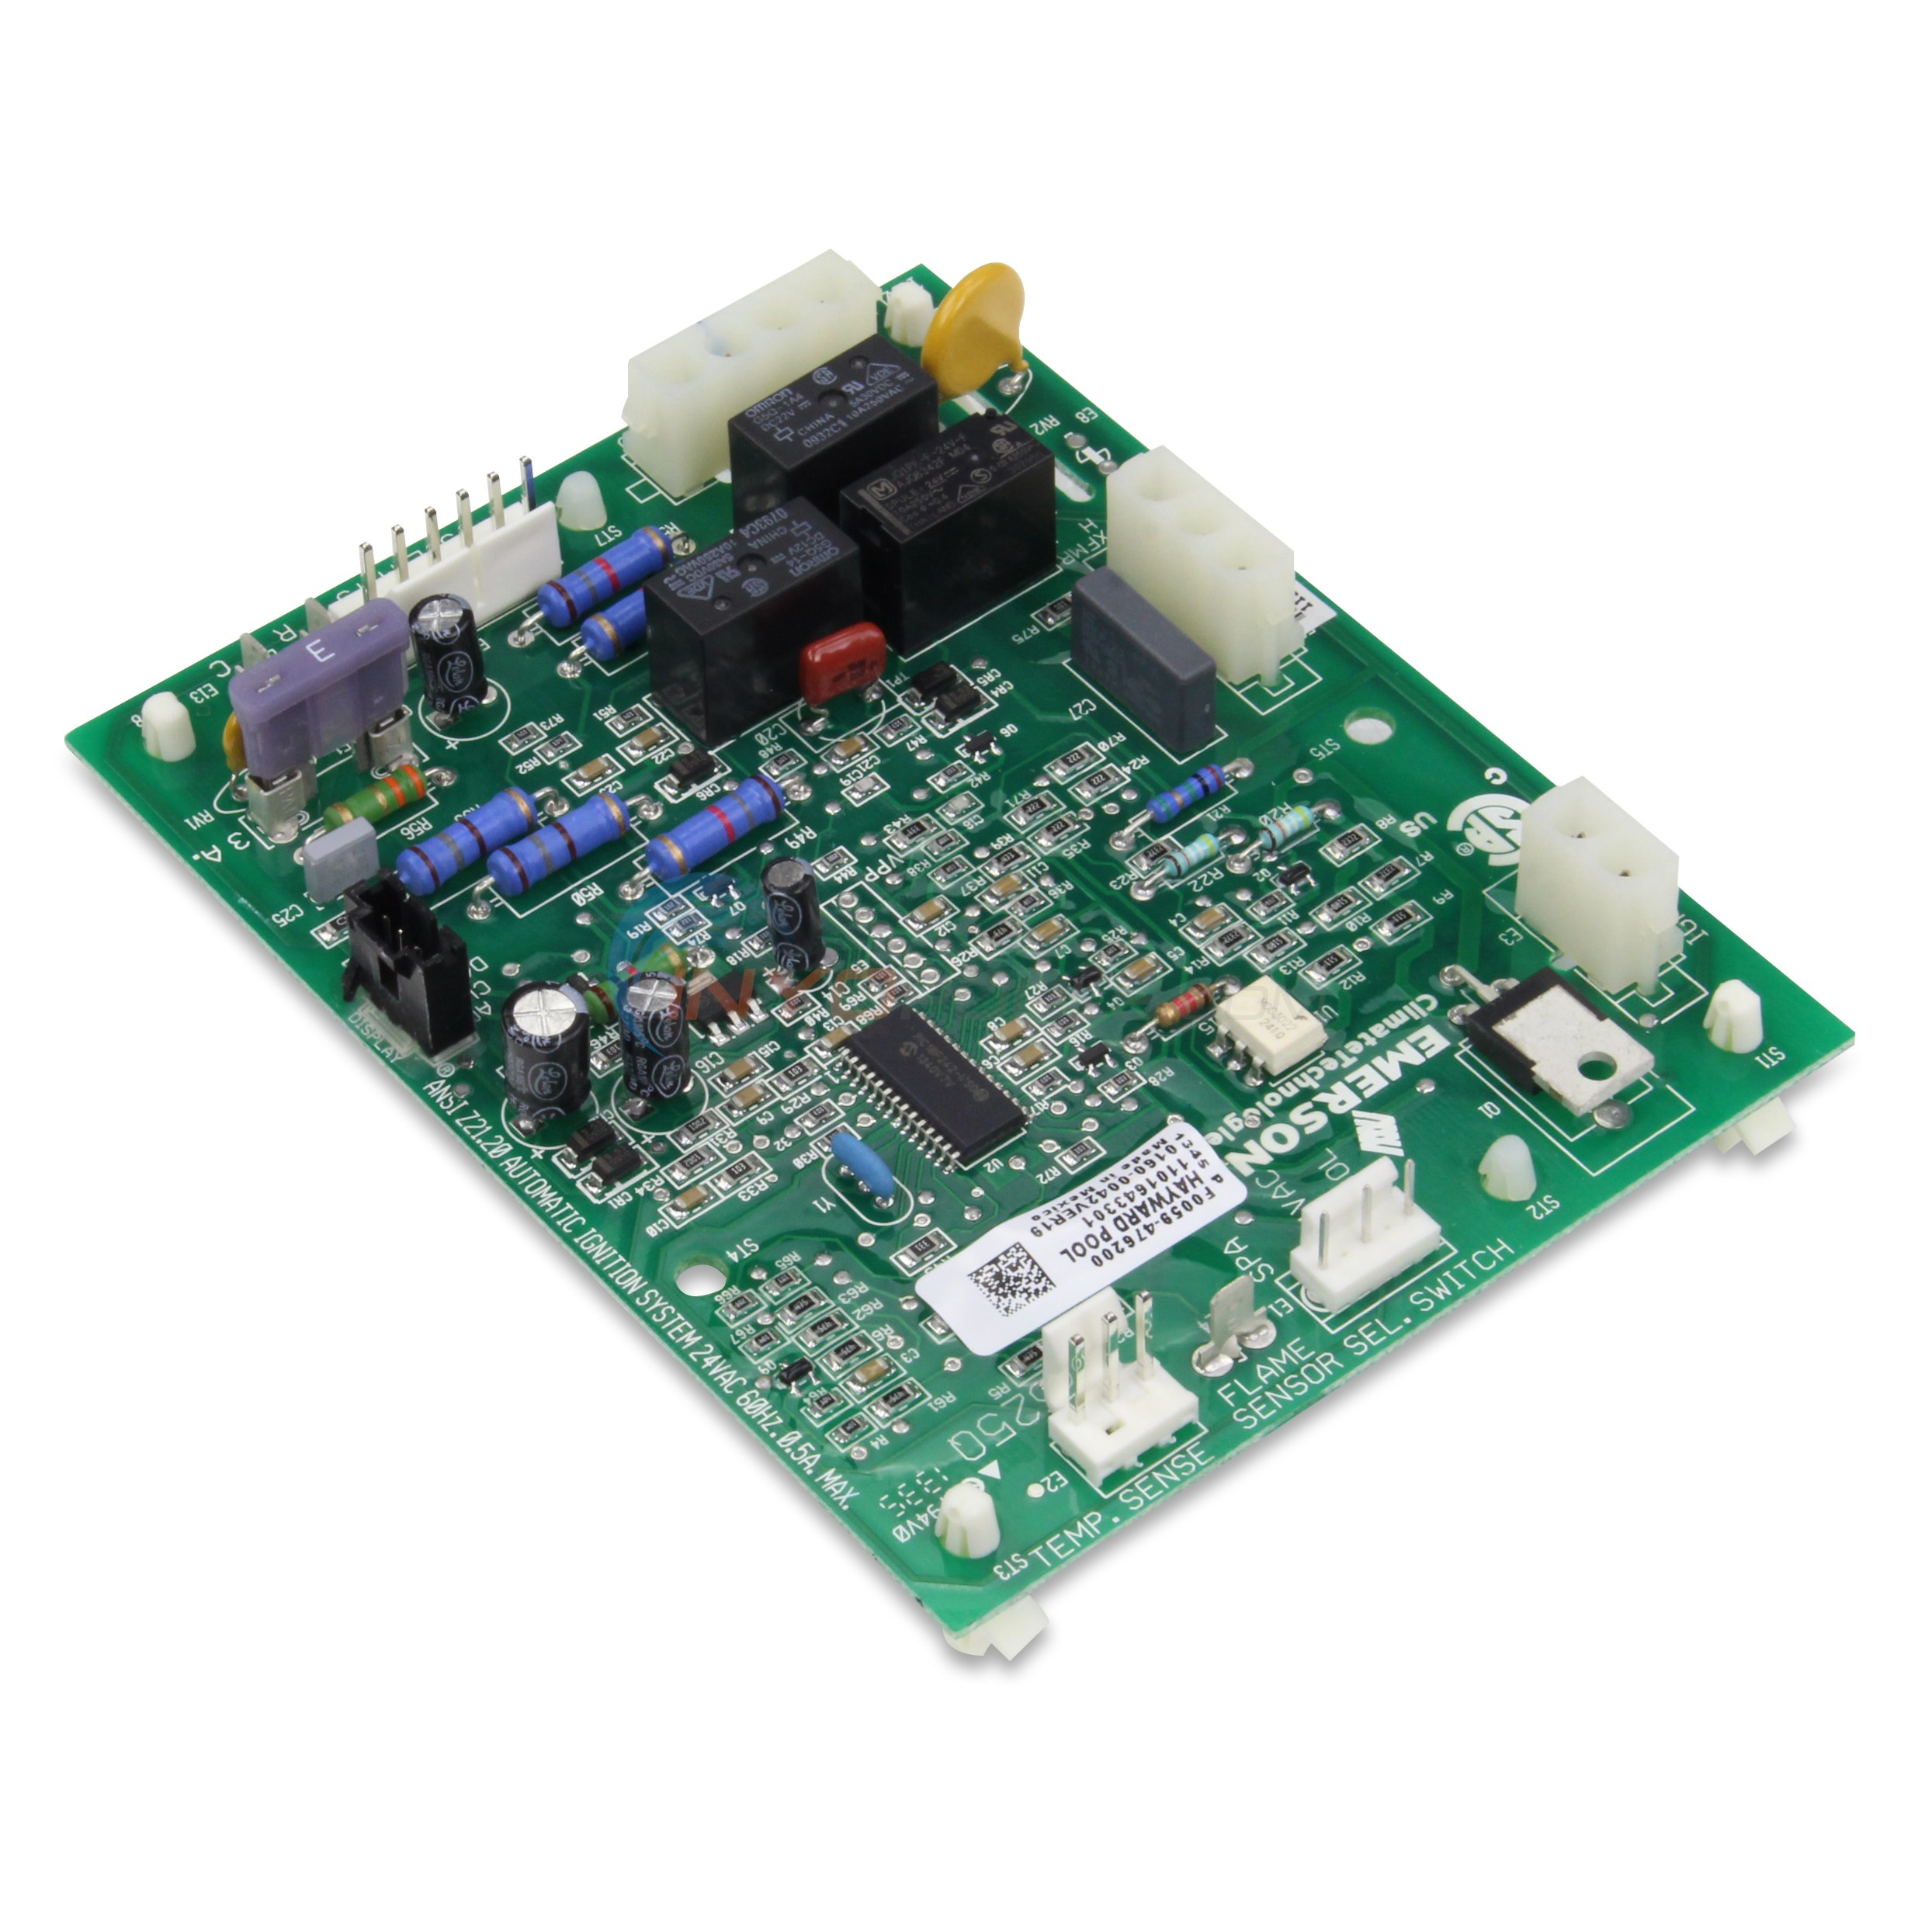 Hayward Integrated Control Board UHSLN - FDXLICB1930